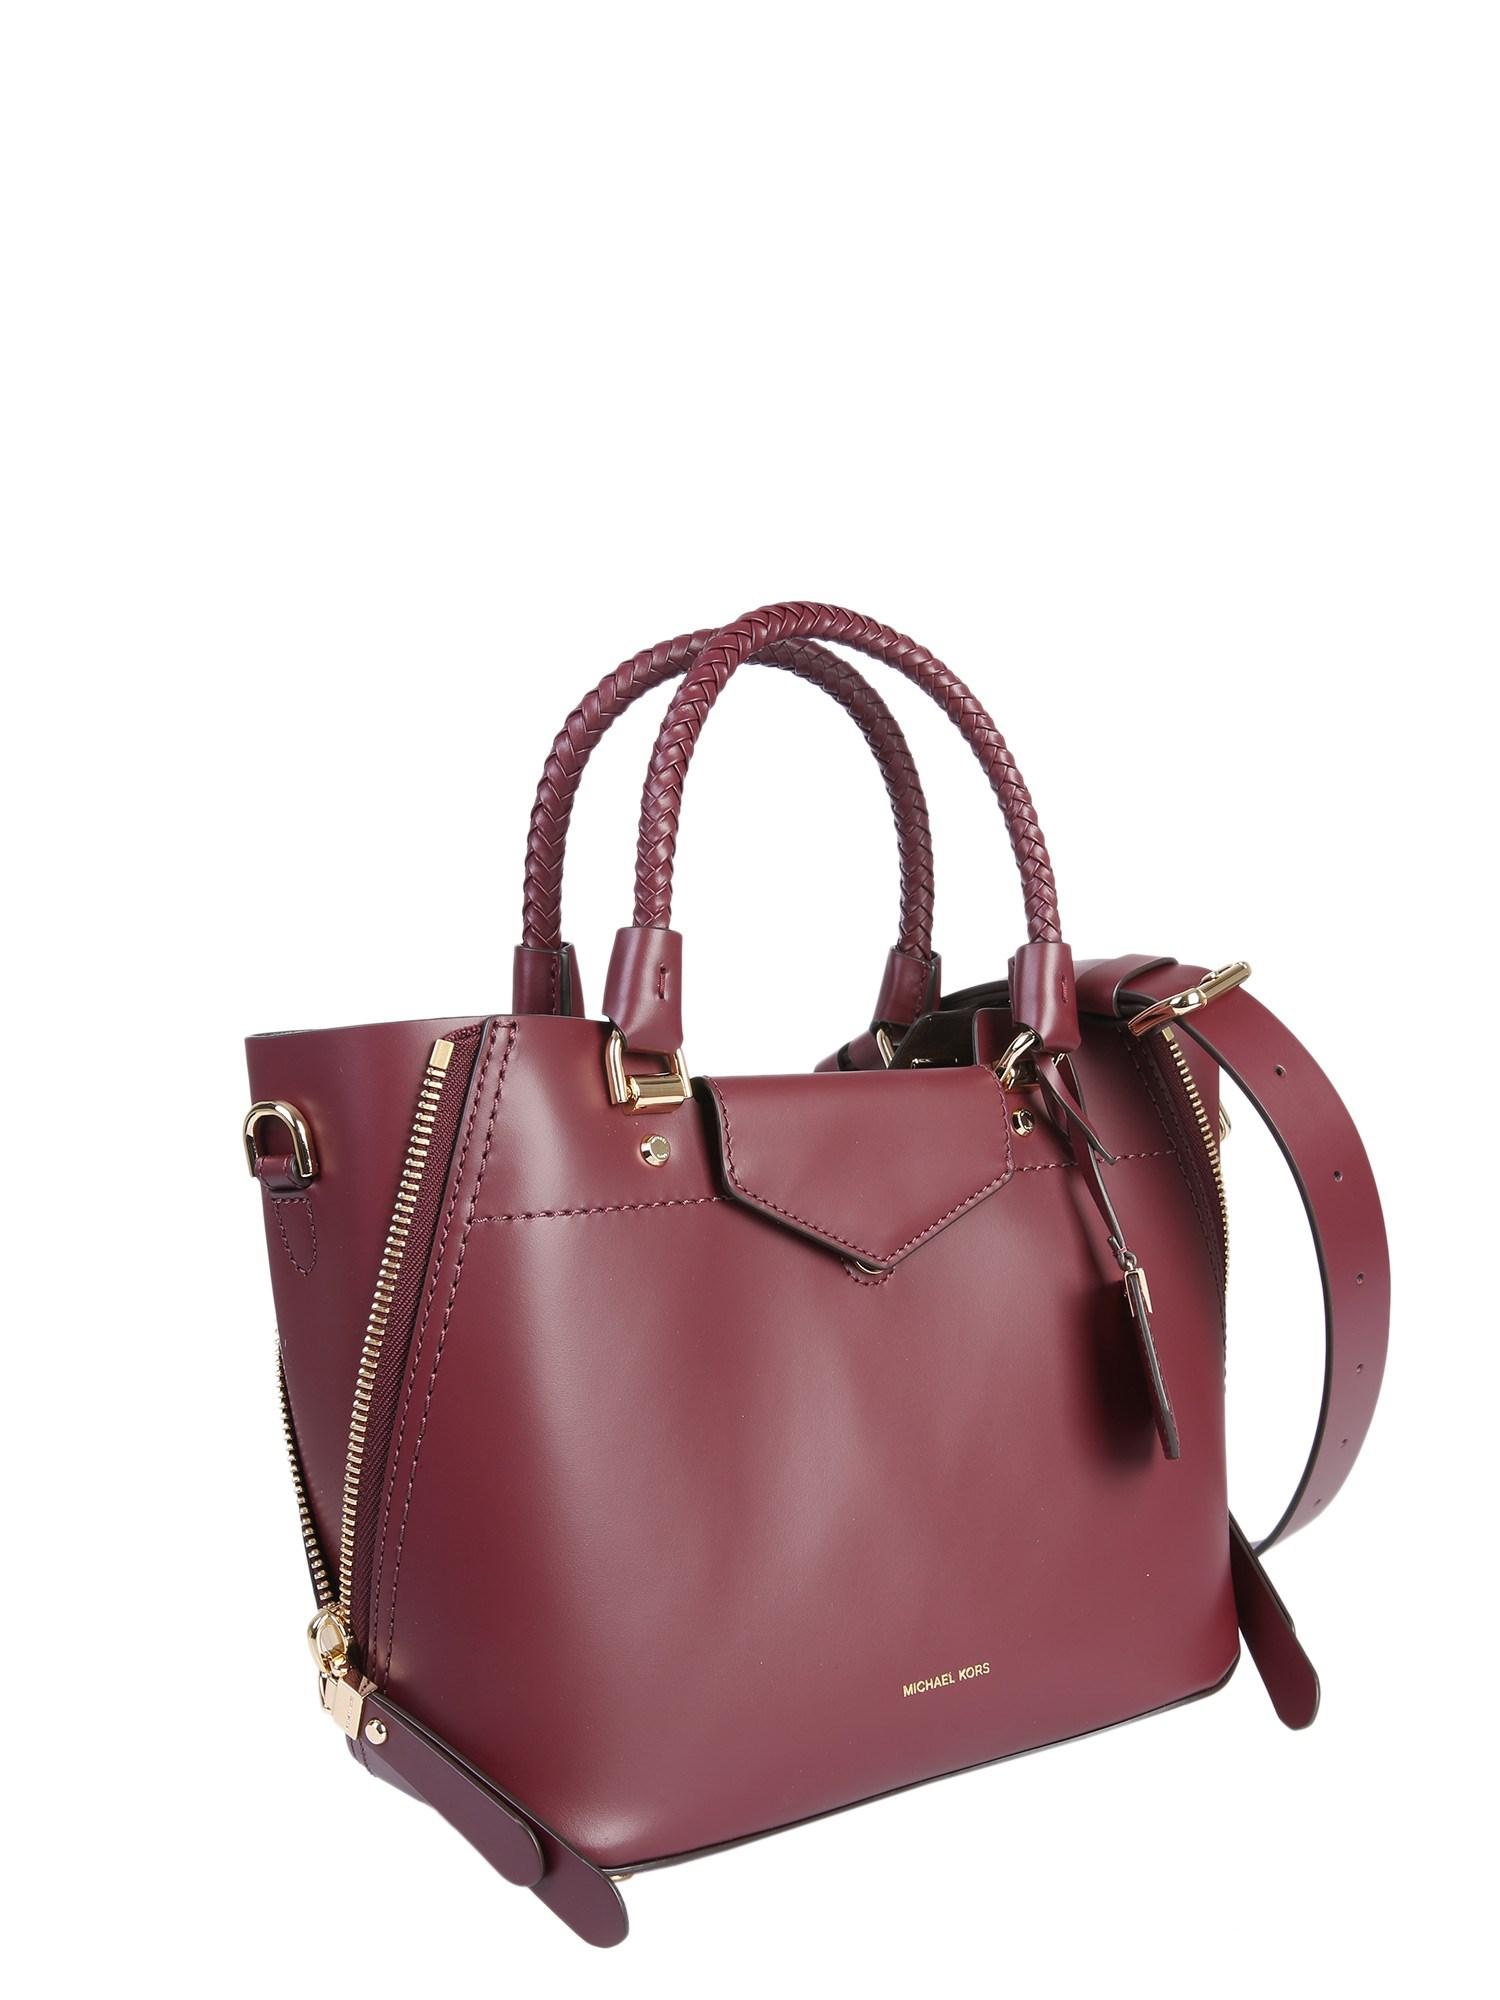 f2c89194f0fd Lyst - MICHAEL Michael Kors Blakely Leather Handbag in Red